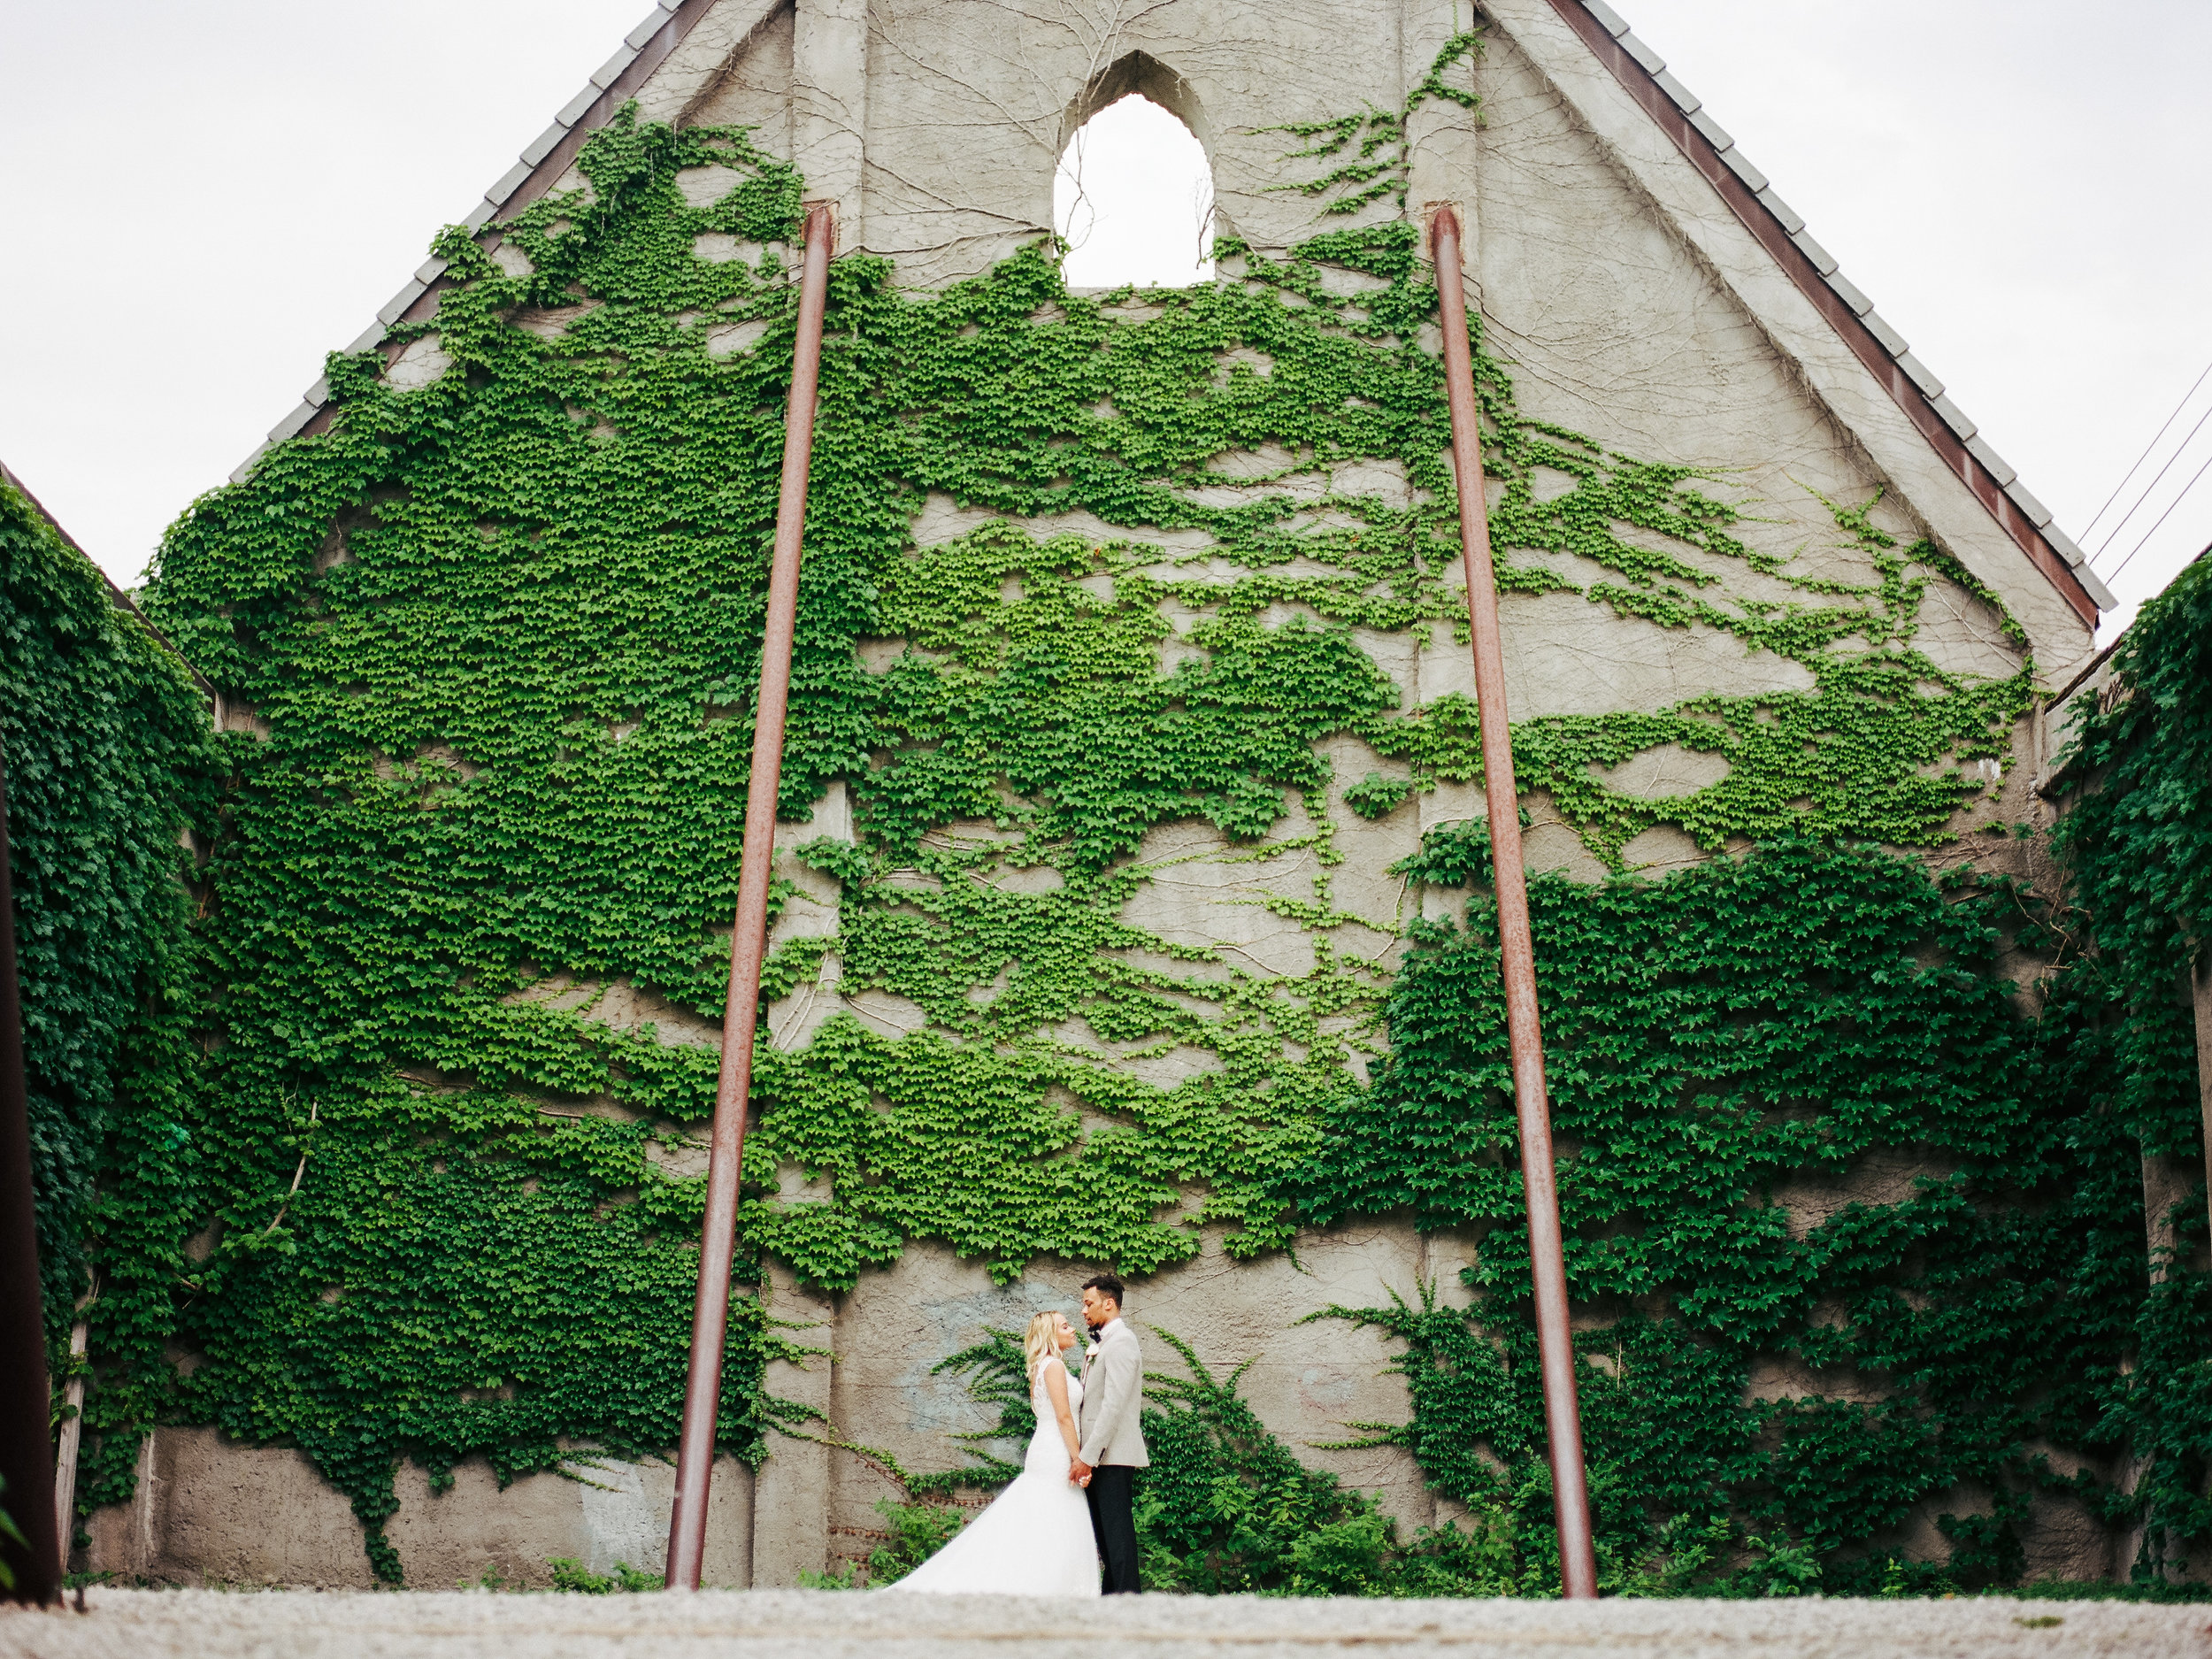 Ashley Pieper Photography, St. Louis Wedding, Elopement, and Destination Photographer.